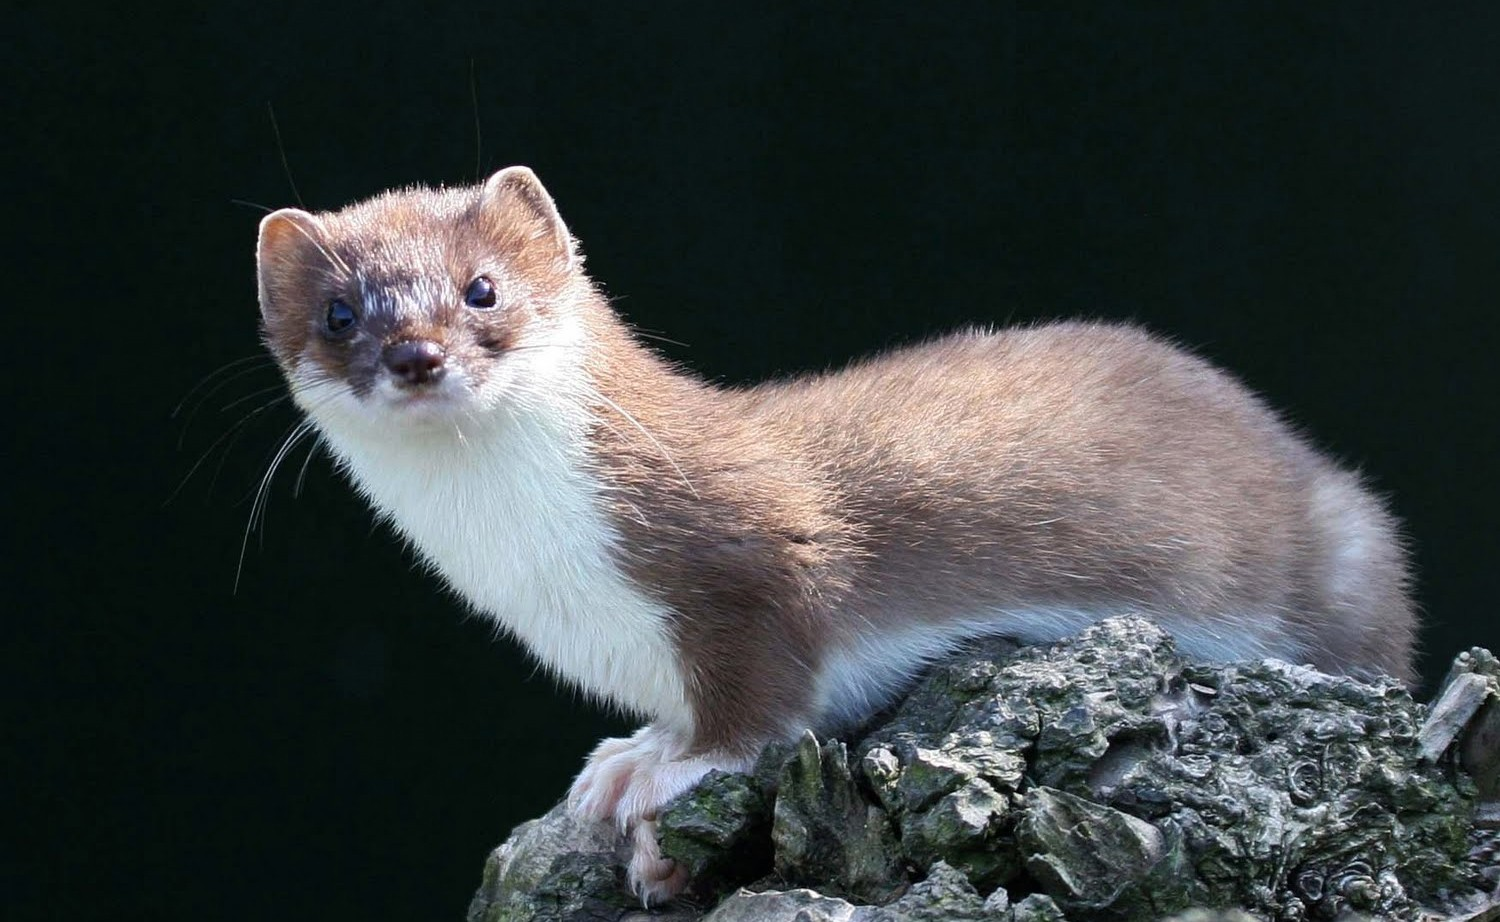 Pictures of the ermine